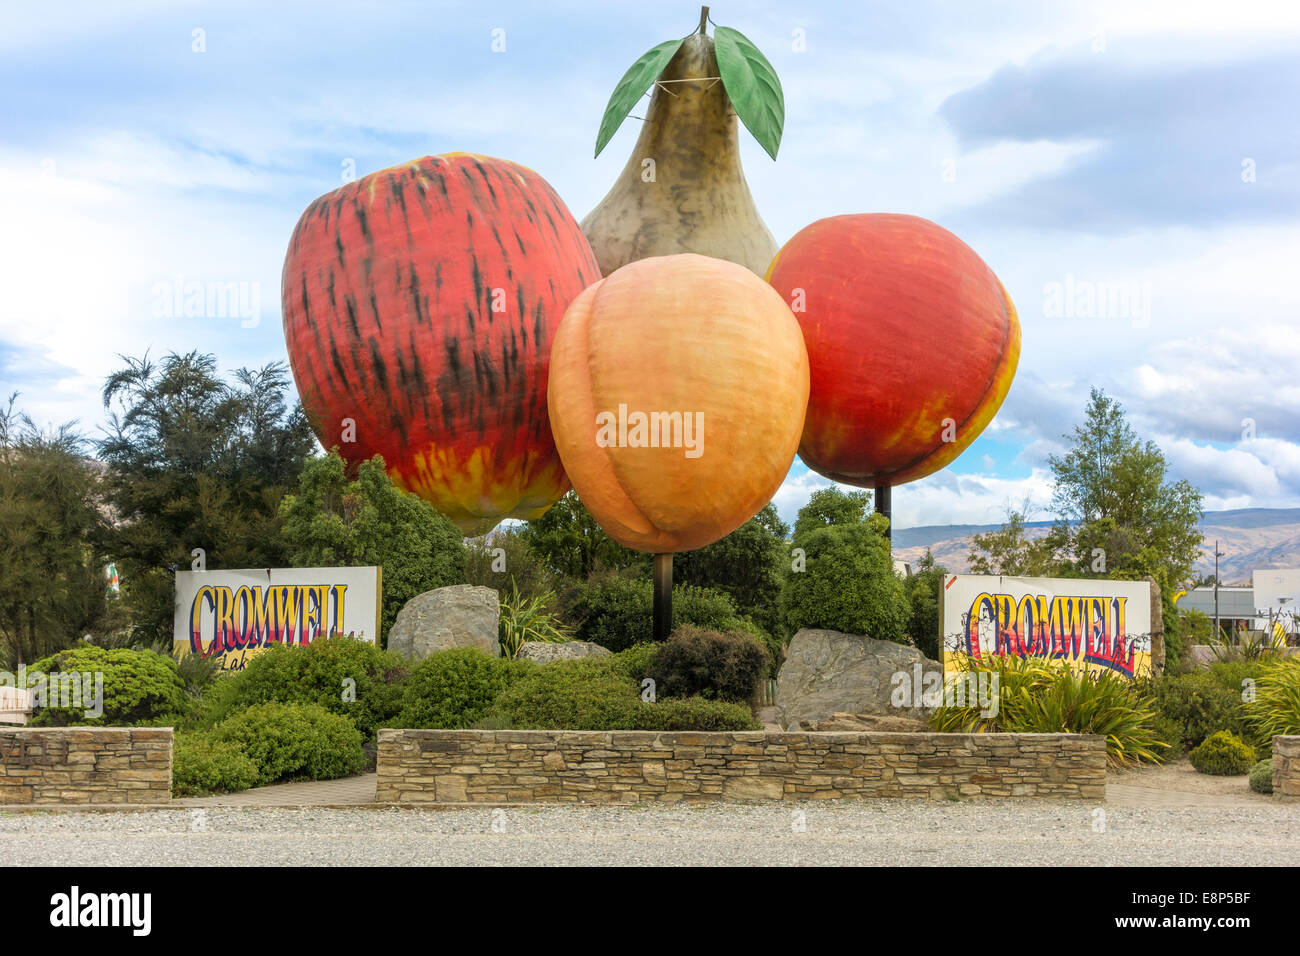 Giant Fruit sculpture at the entrance to Cromwell Otago New Zealand Roadside Attraction Big Things Apple Pear Apricot - Stock Image